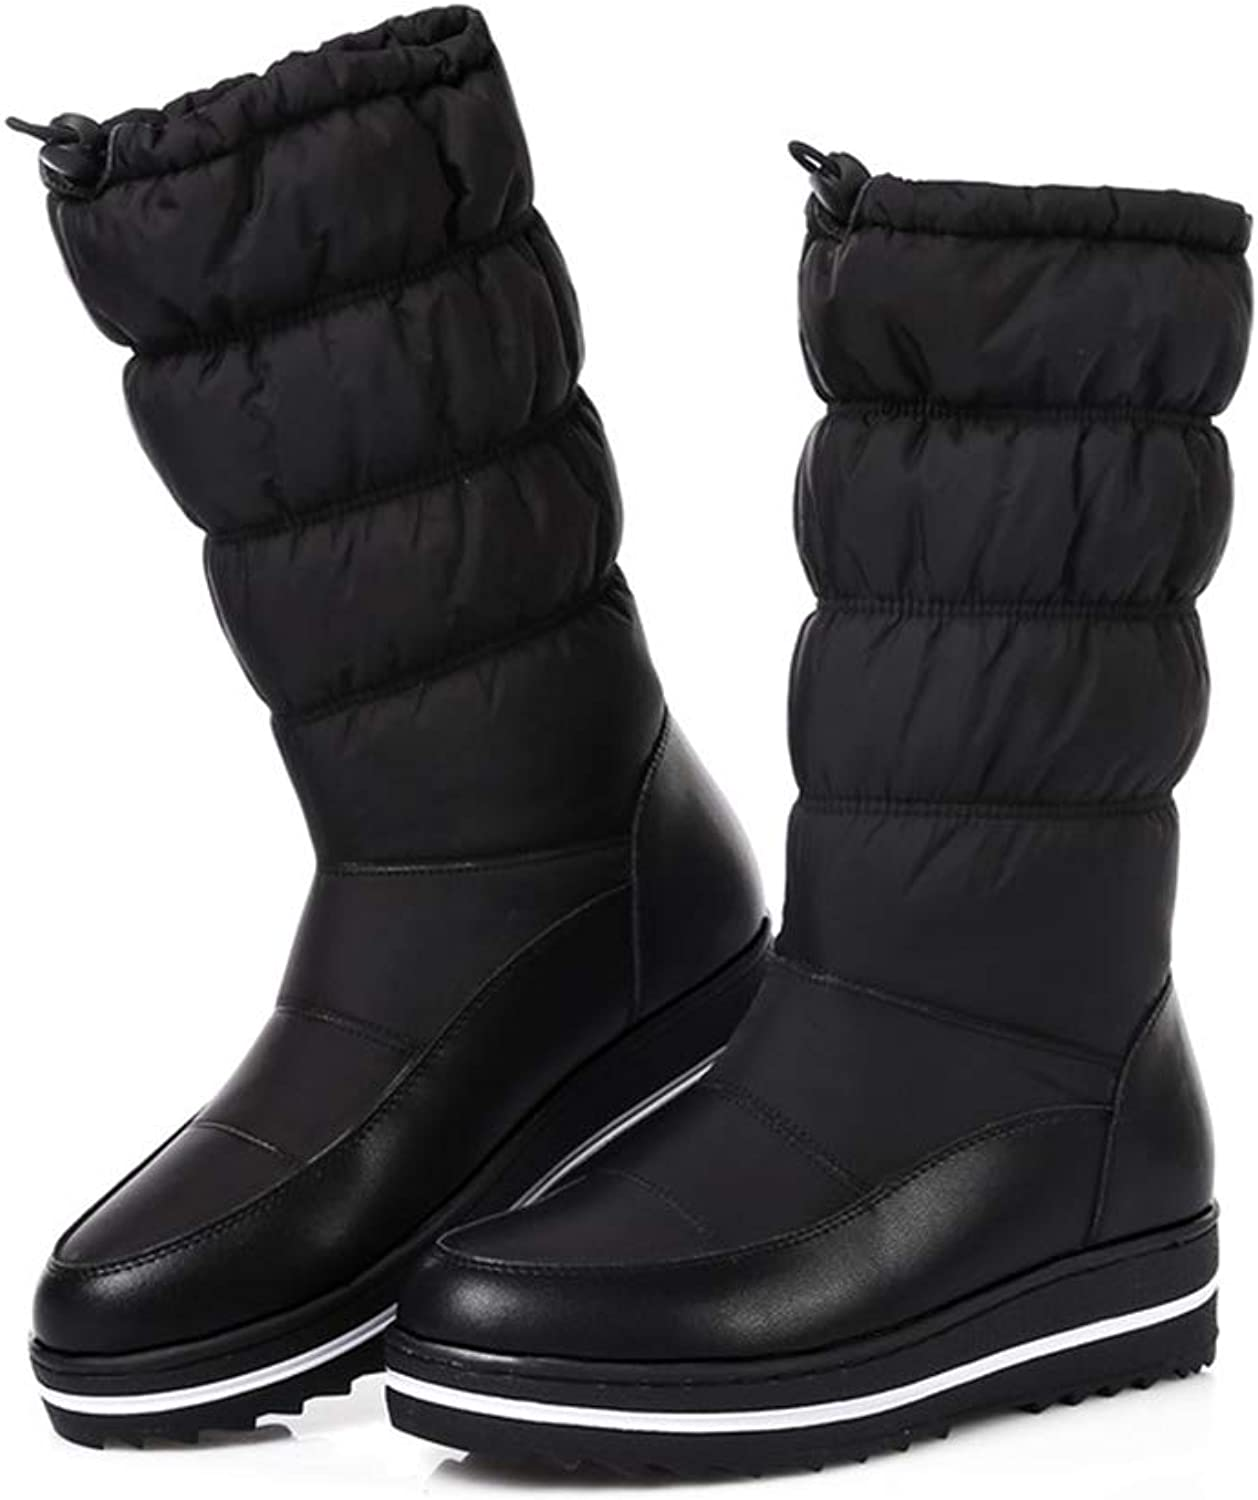 Btrada Women's Mid-Calf Boots Fashion Down Waterproof Keep Warm Snow Boot Solid color Female Casual shoes